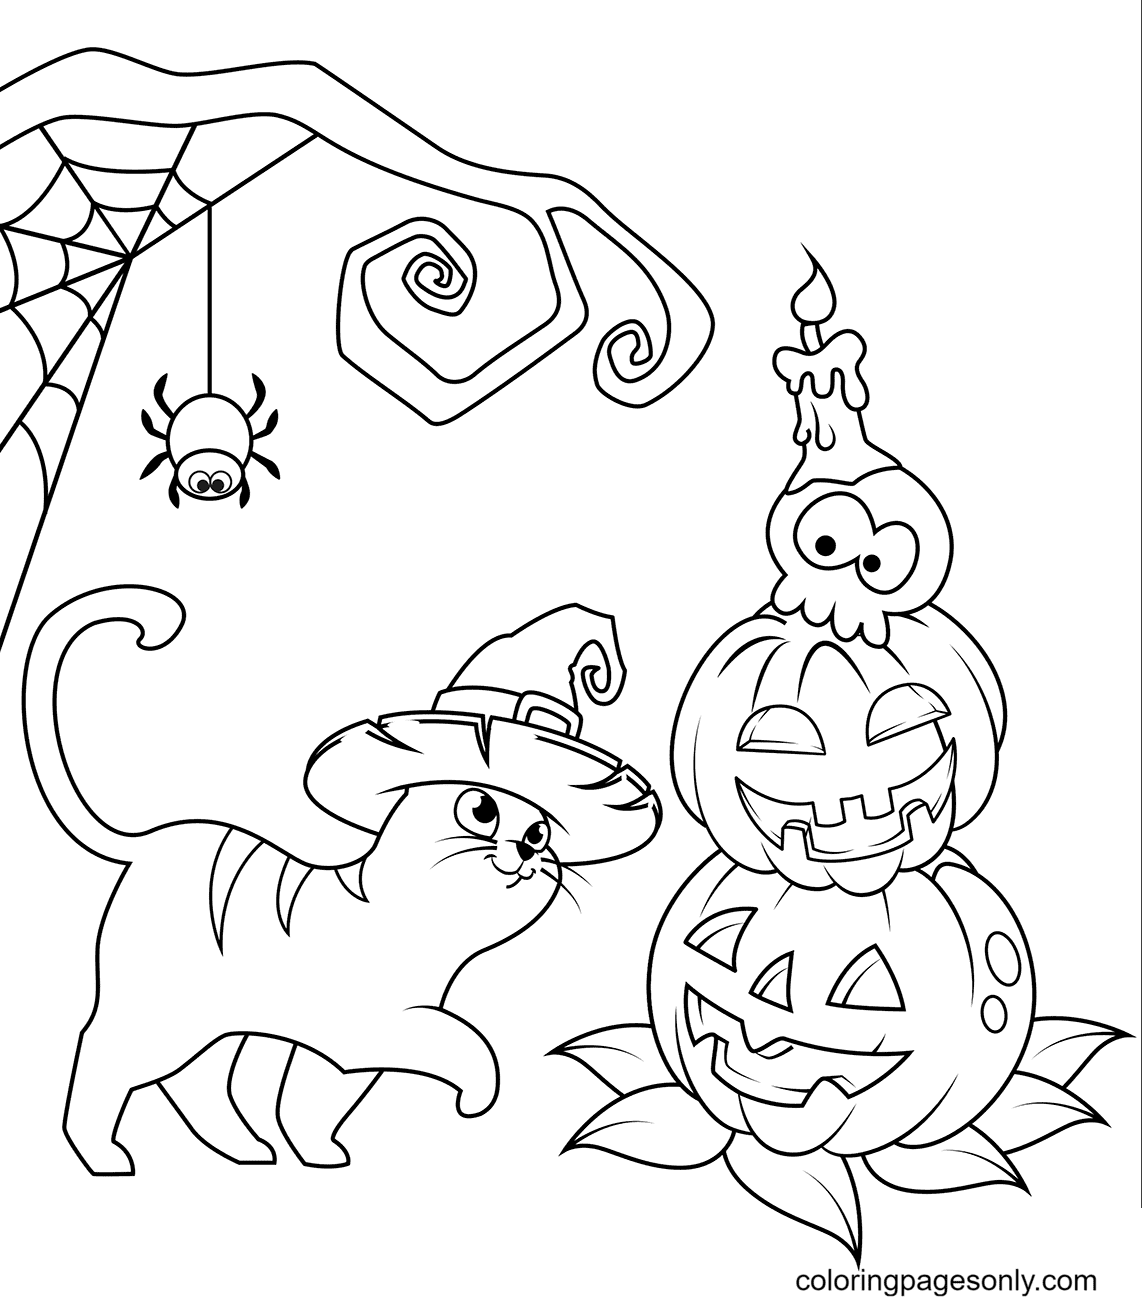 Halloween Cat and Jack O'Lantern Coloring Page